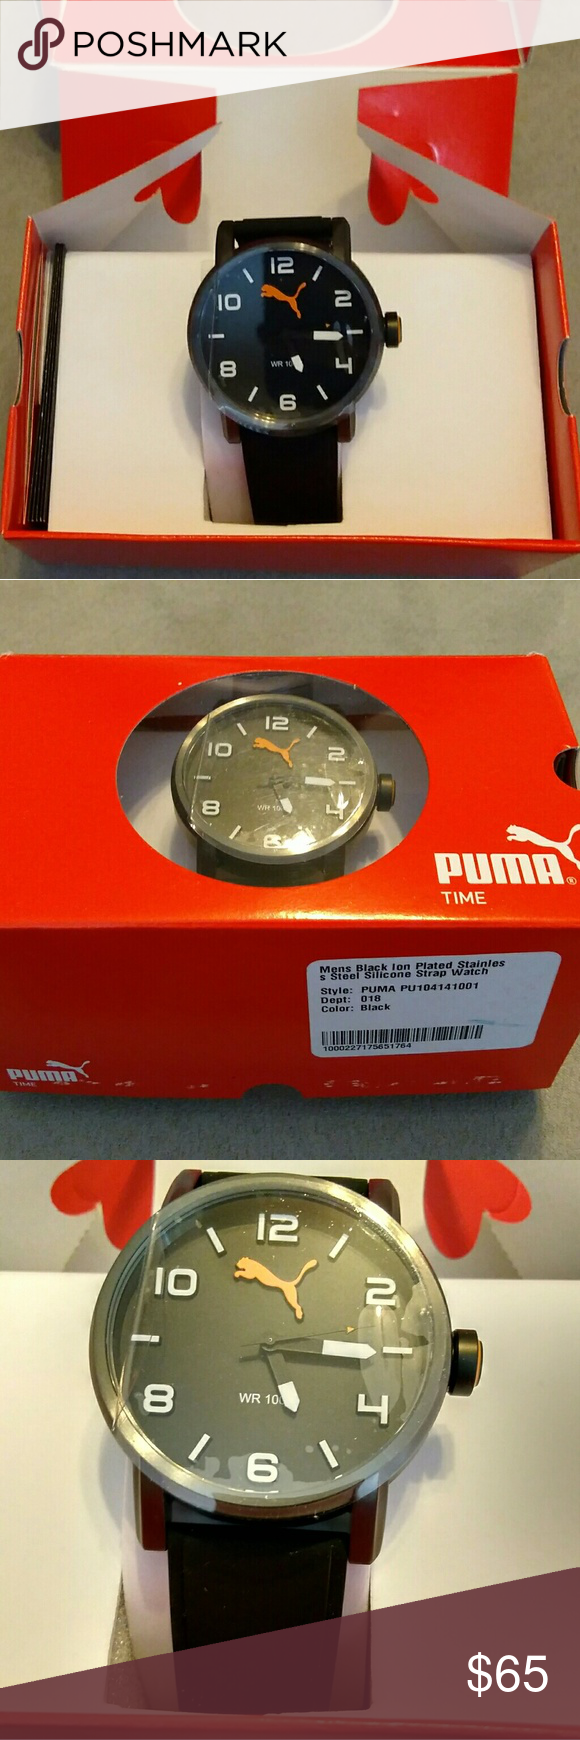 8cda1904c06f Men s Puma Watch Brand new men s Puma watch. Great gift idea! Includes  original box as photographed. Brand new. Bubbles shown on watch face in  photo are ...